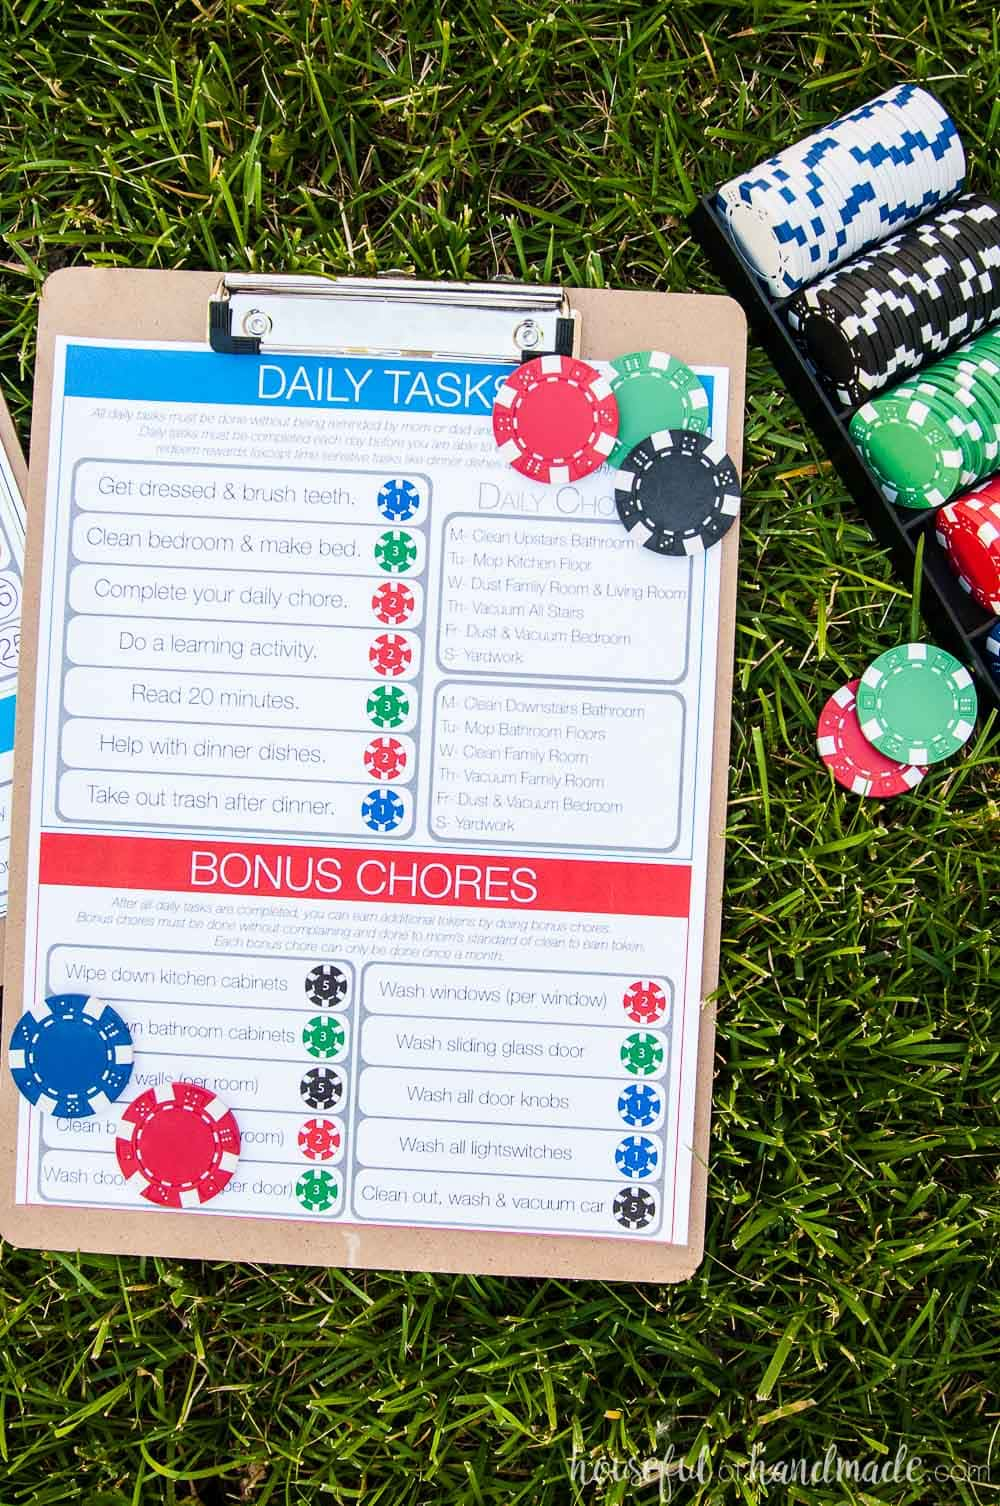 Poker chips used for rewards shown with printable kids chore chart on grass